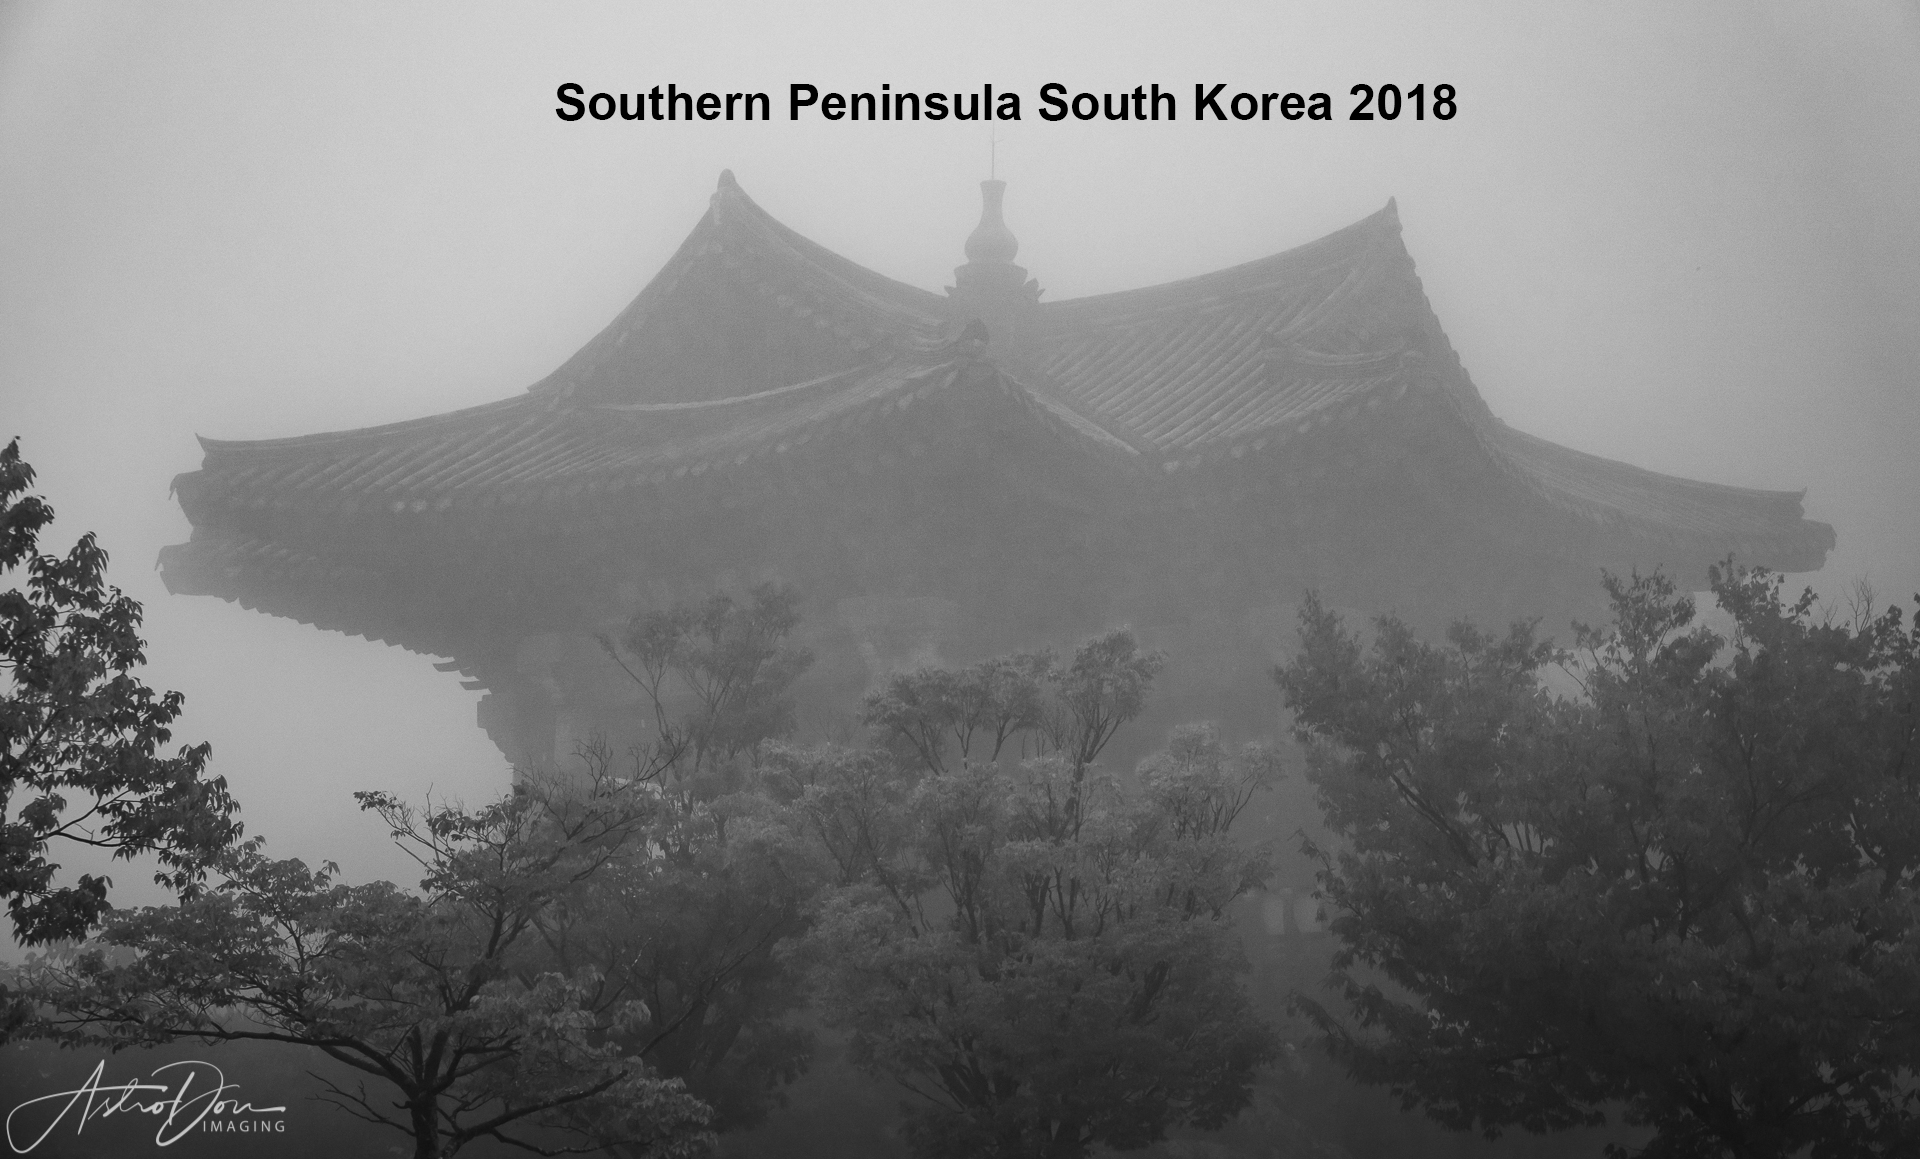 Southern Peninsula South Korea